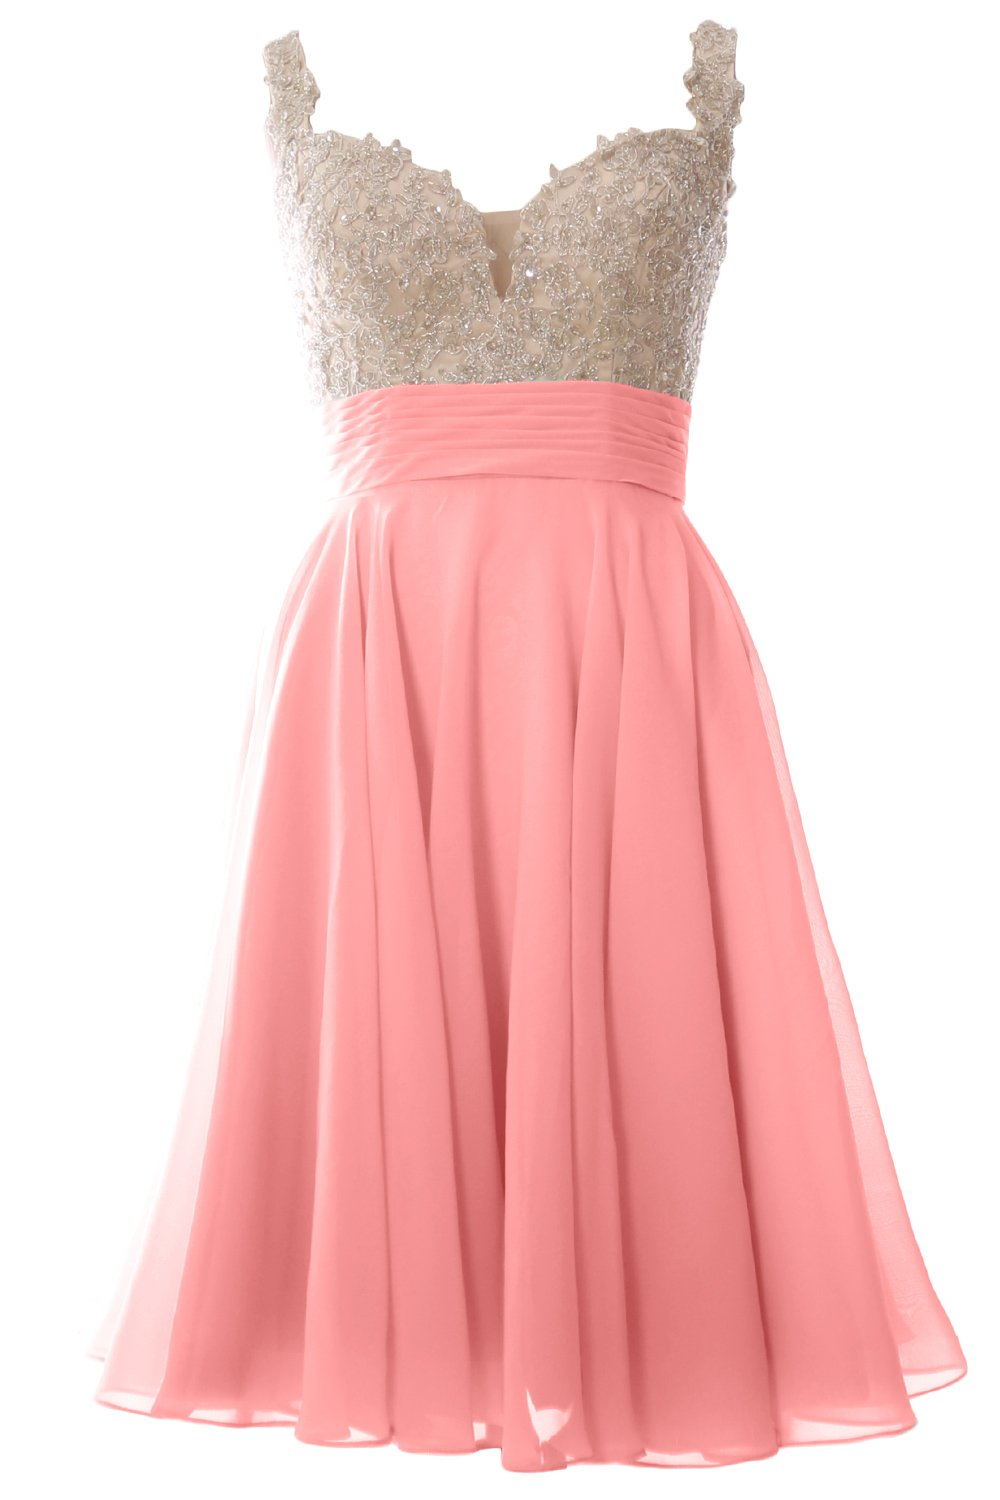 e1bc1b9af402 ... dresses/MACloth Women Straps Wedding Party Formal Gown Short Lace Prom  Homecoming Dress (US14, Blush Pink). ; 